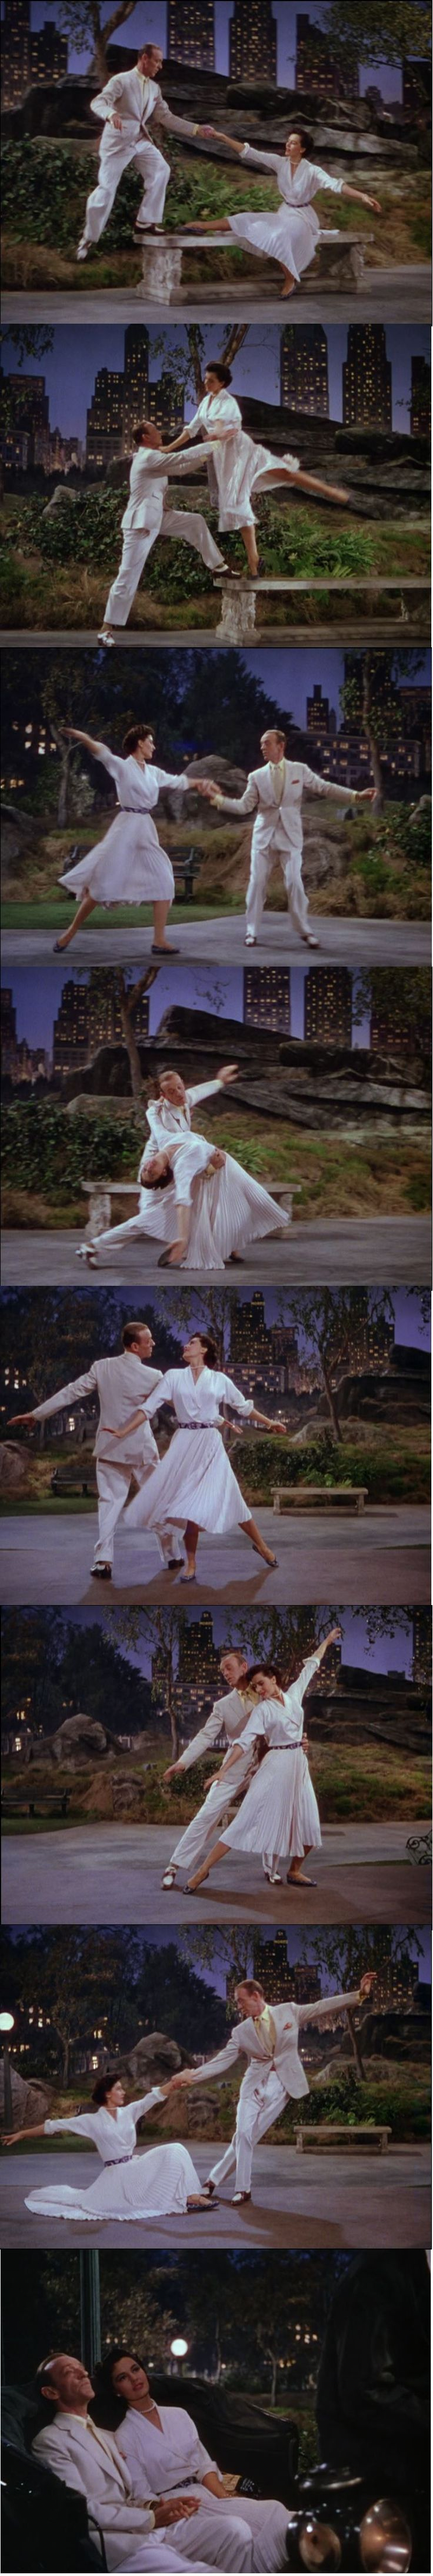 "Fred Astaire and Cyd Charisse ""Dancing in the Dark"" in Central Park  The Band Wagon 1953"